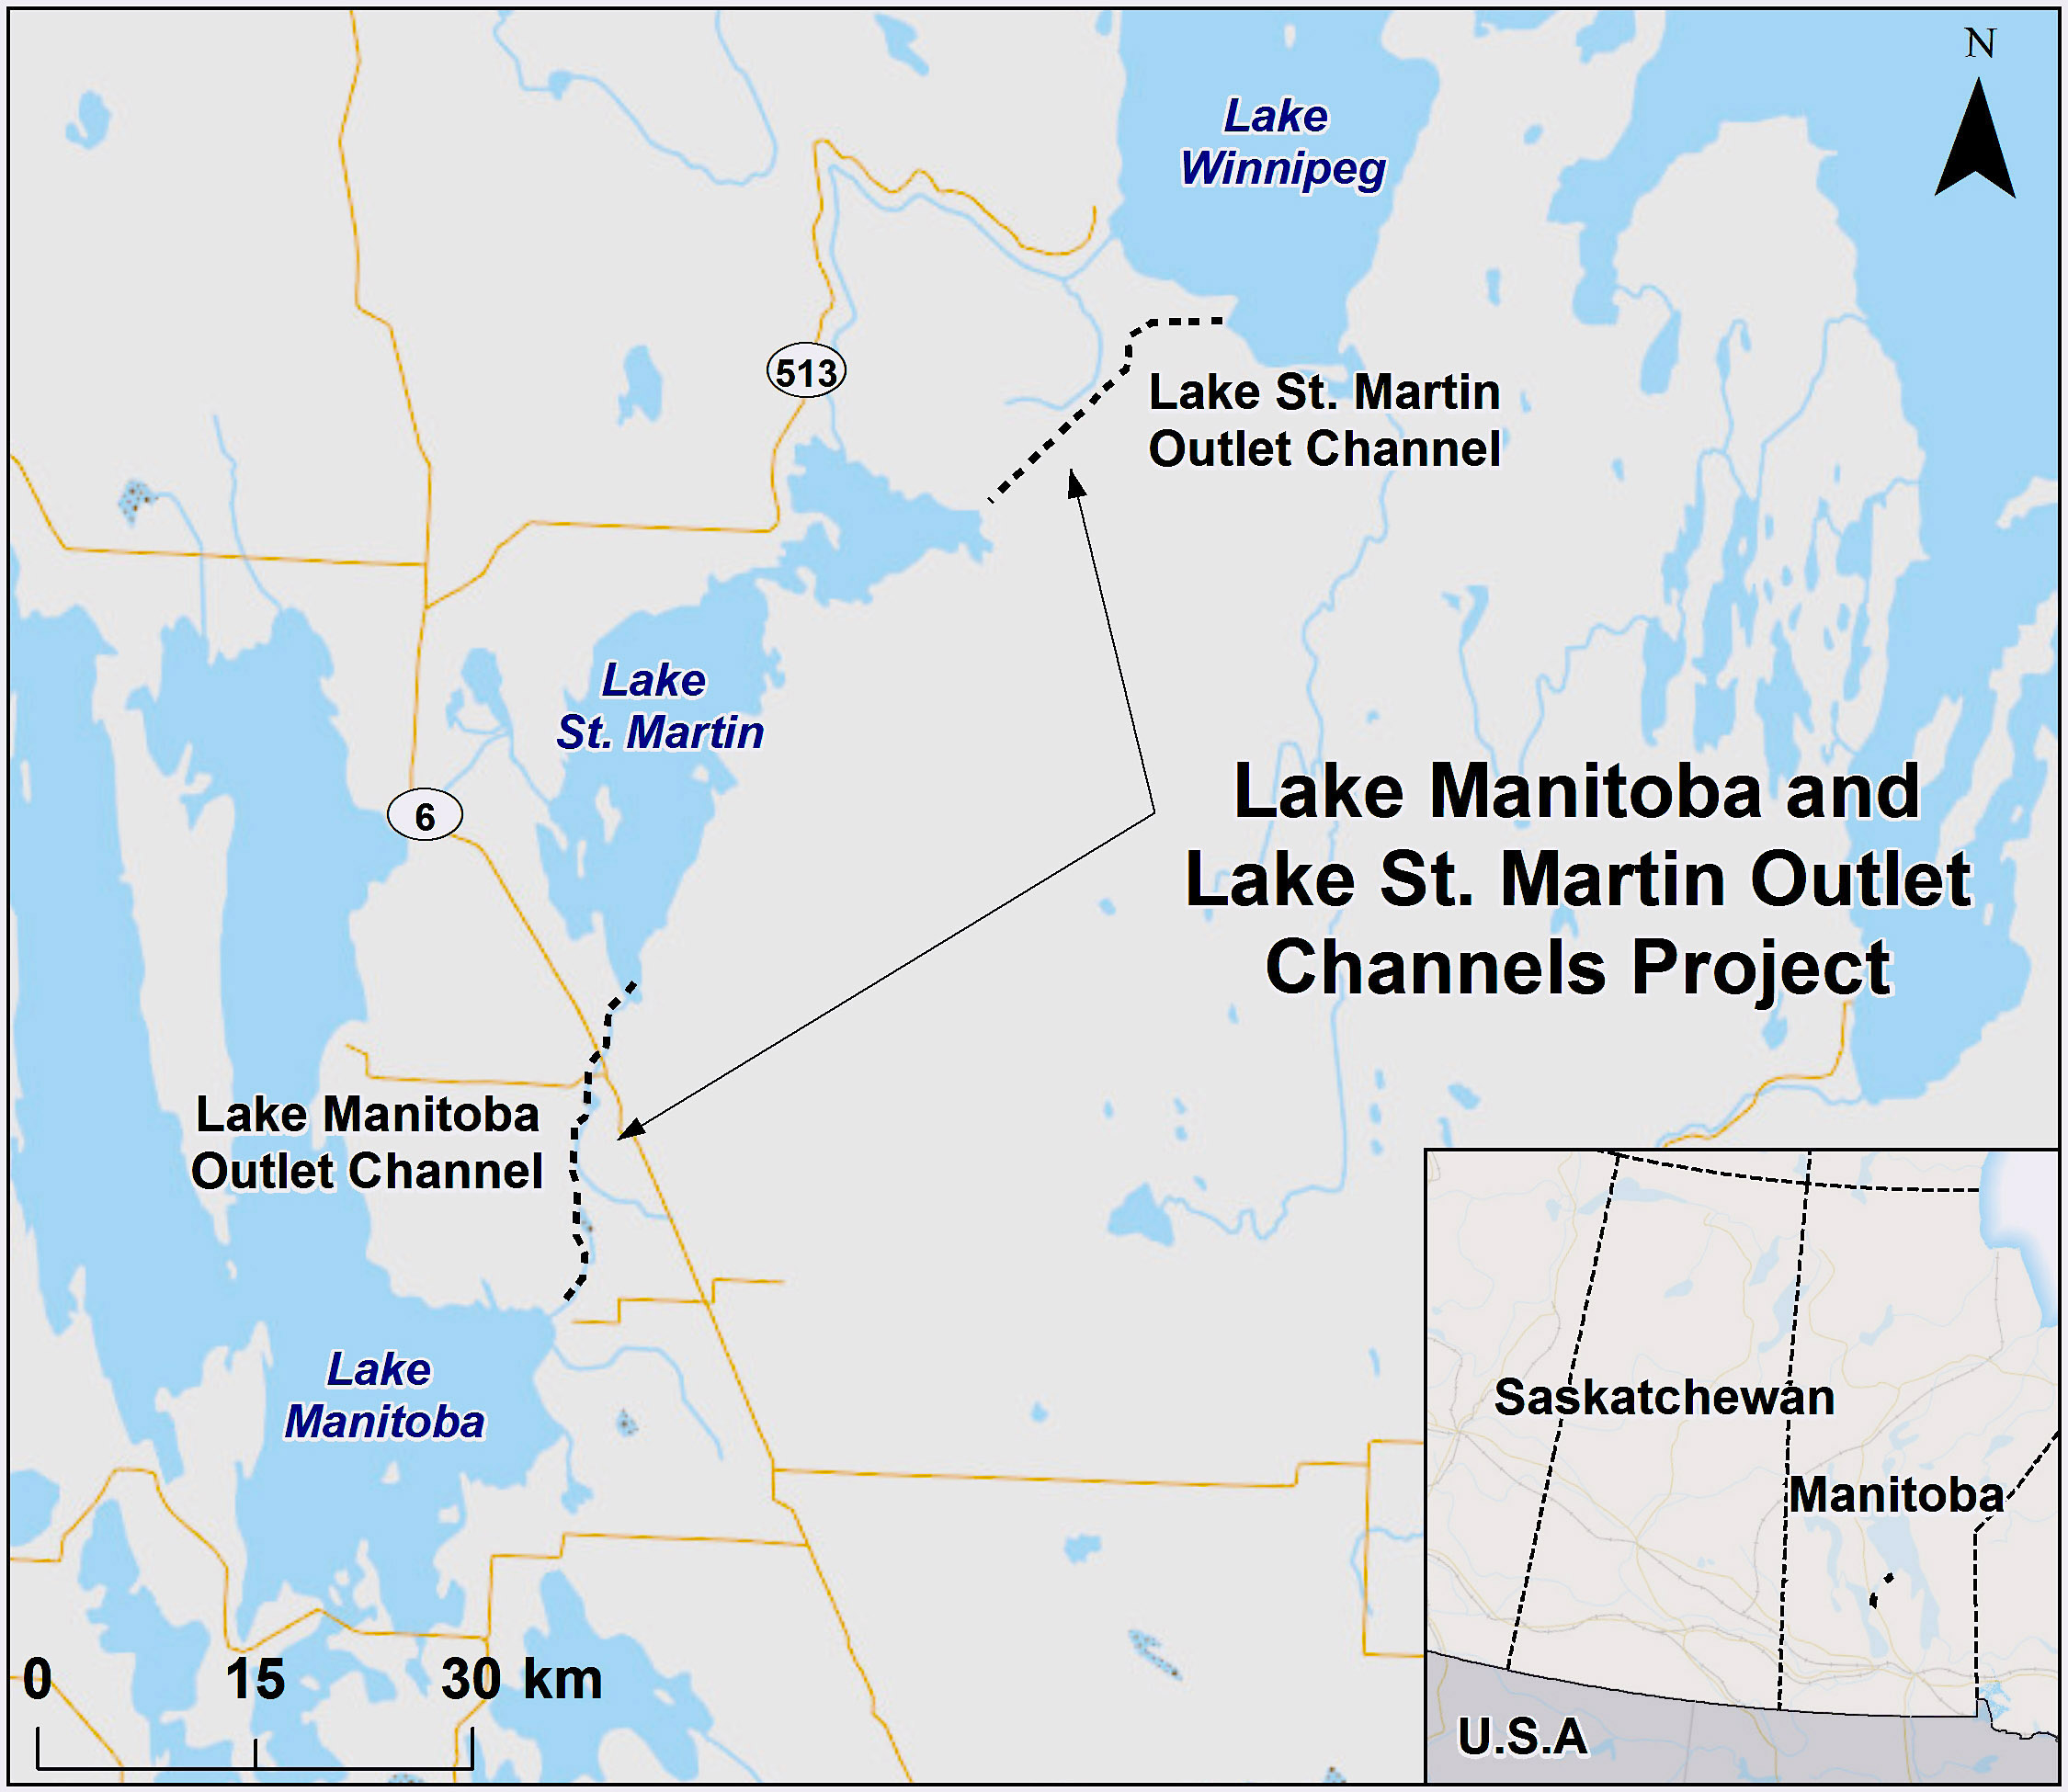 This map shows the location of the proposed Lake Manitoba and Lake St. Martin Outlet Channels Project.